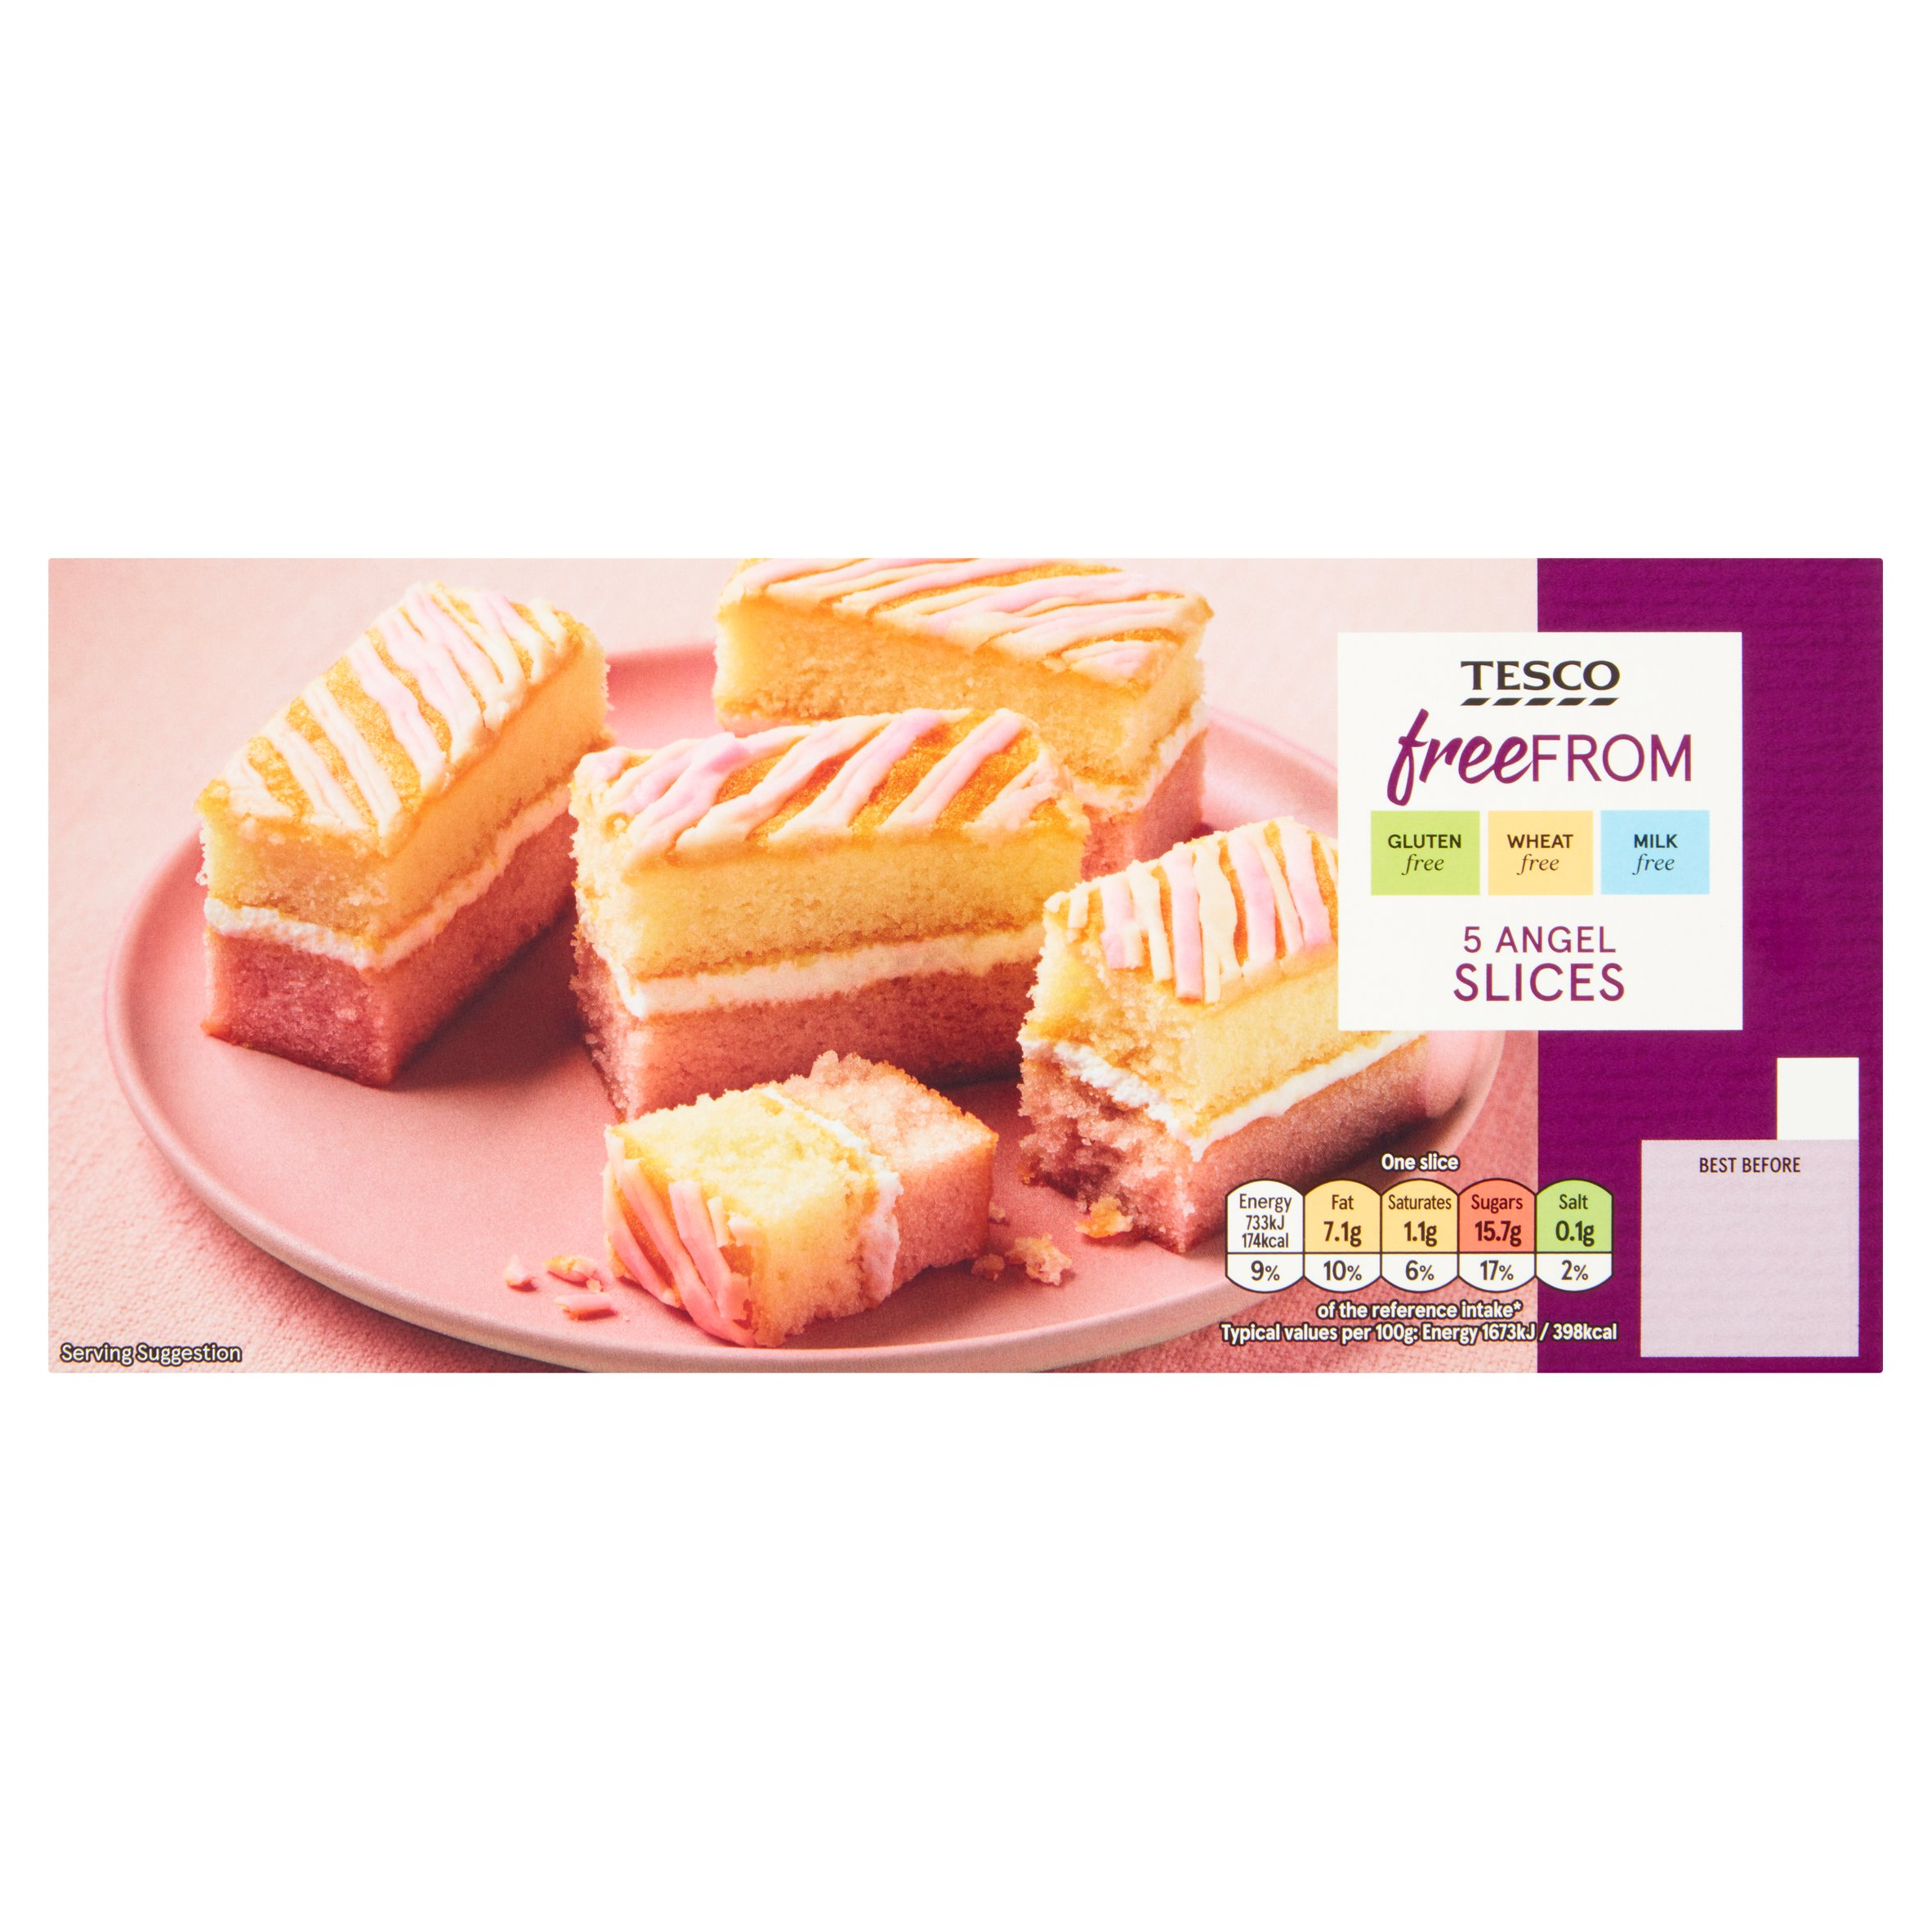 Tesco Free From 5 Angel Slices